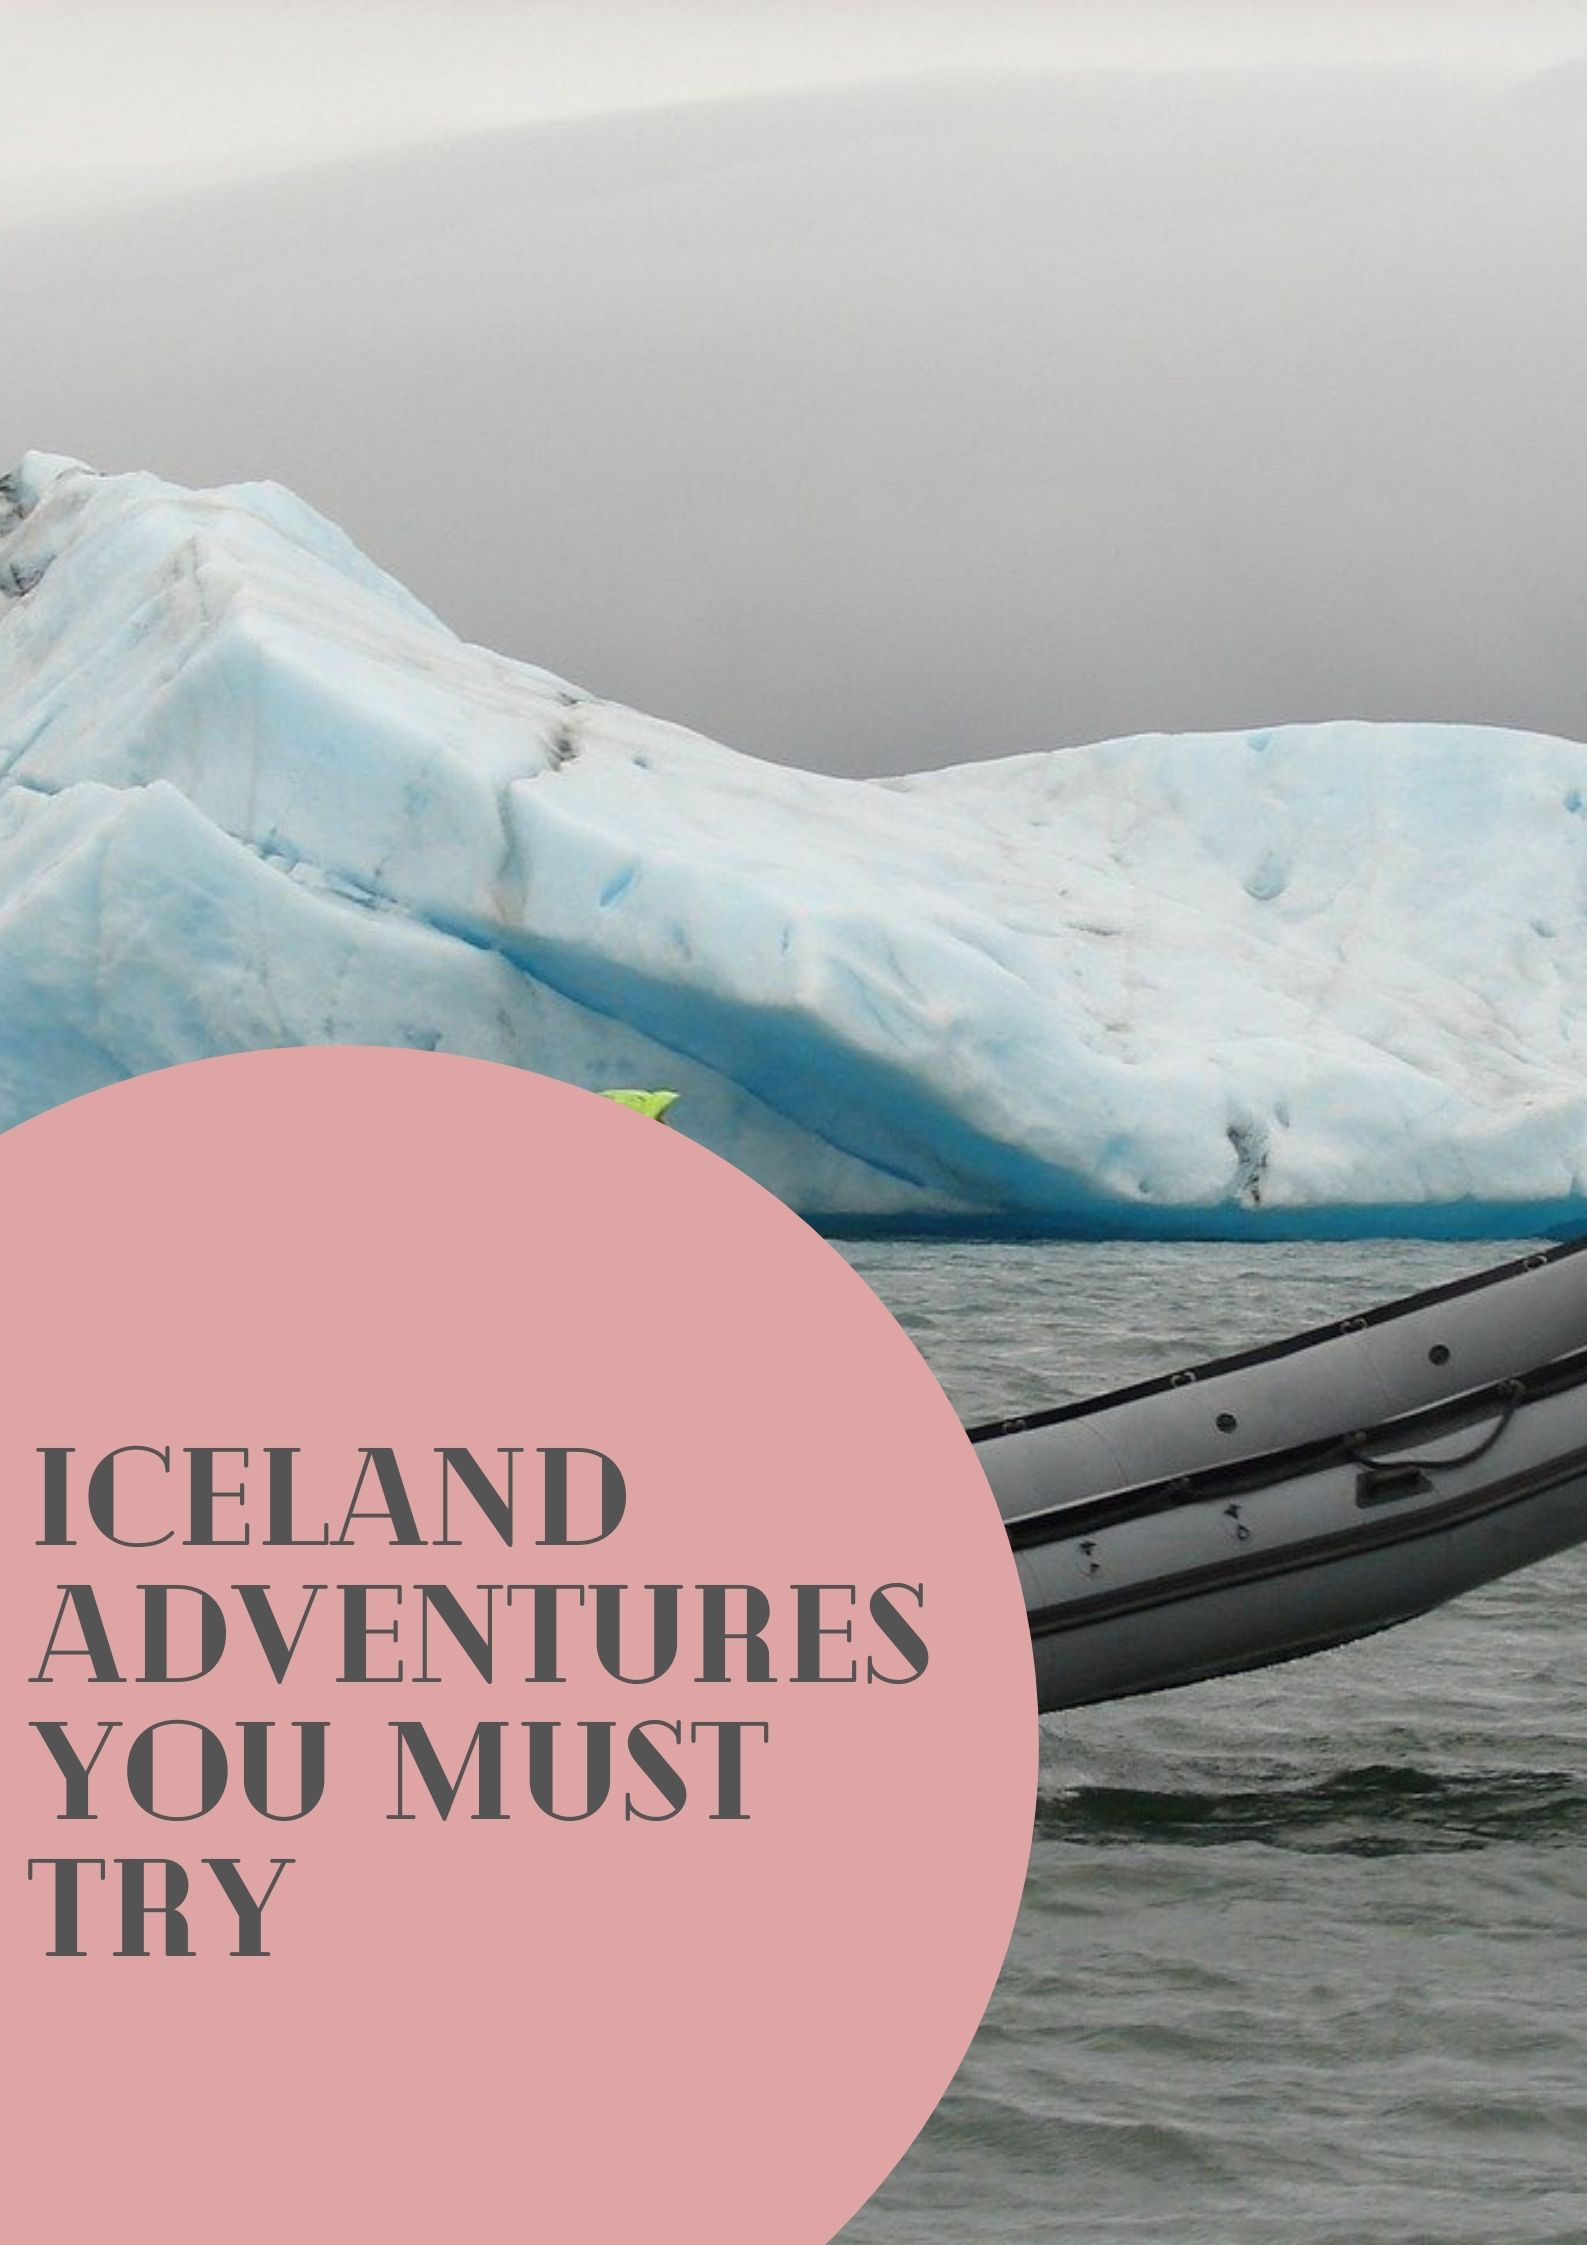 Iceland Adventures You Must Try